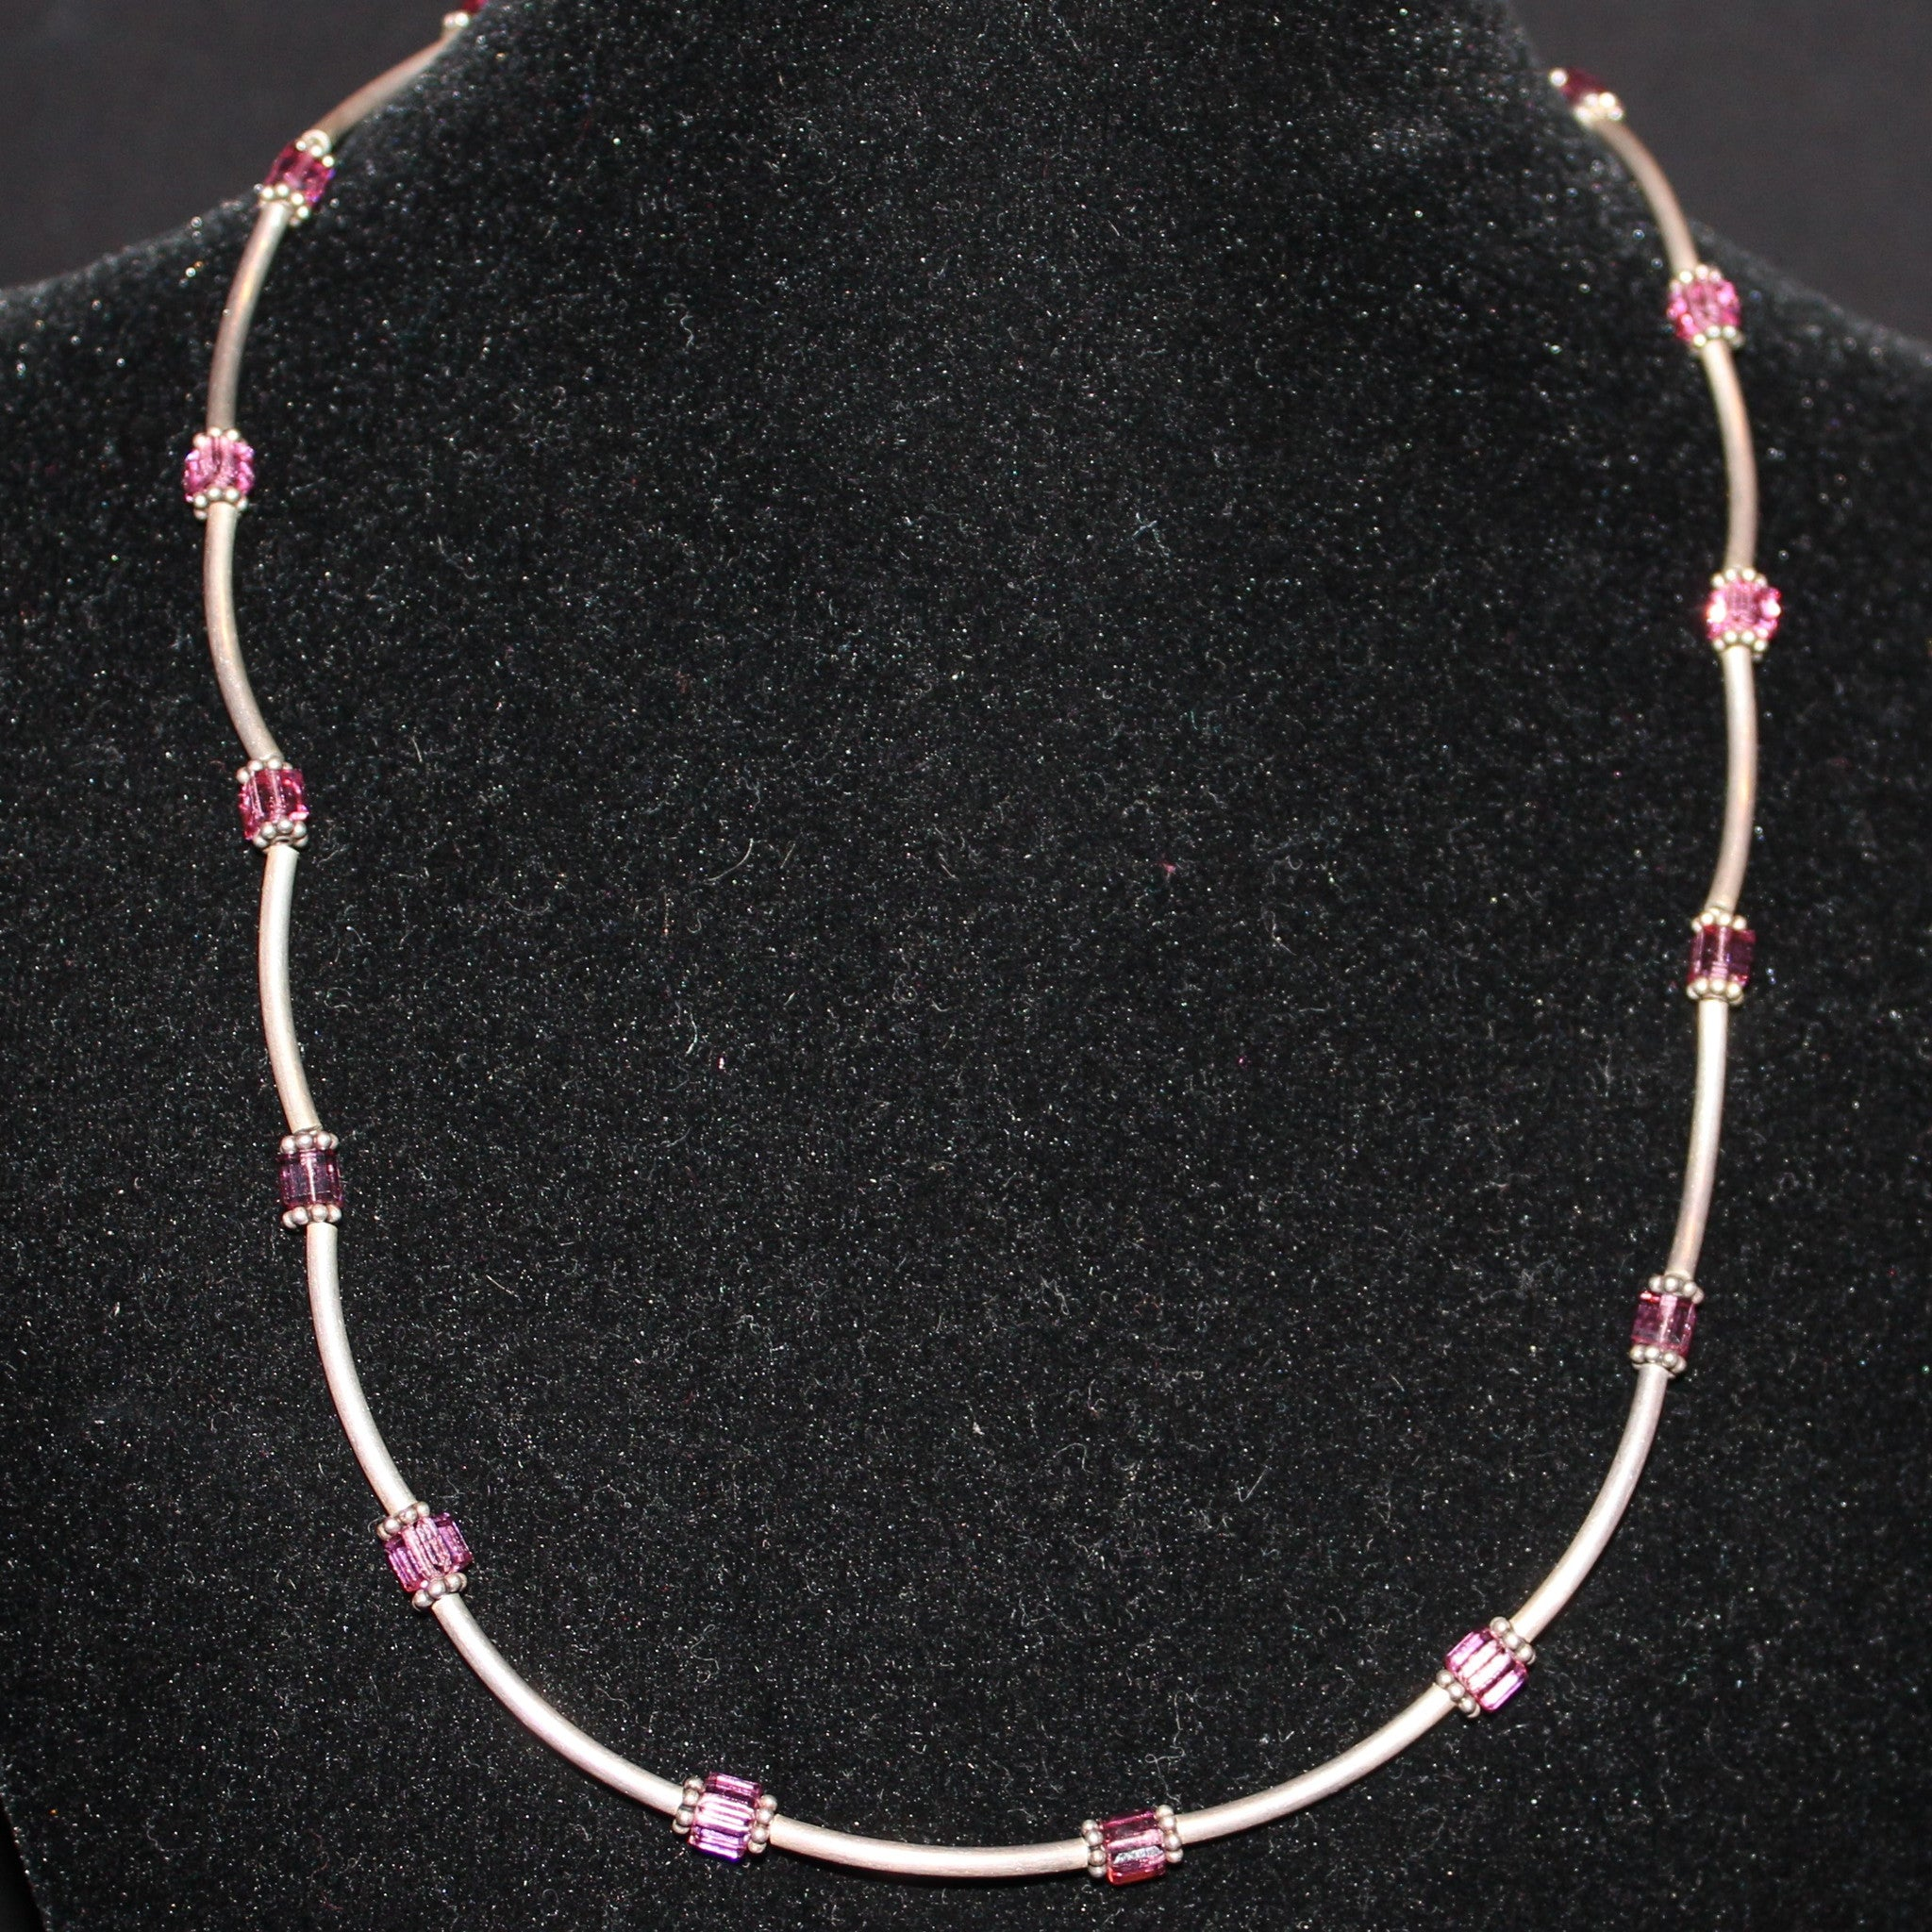 Susan M - Swarovski crystal and sterling silver necklace